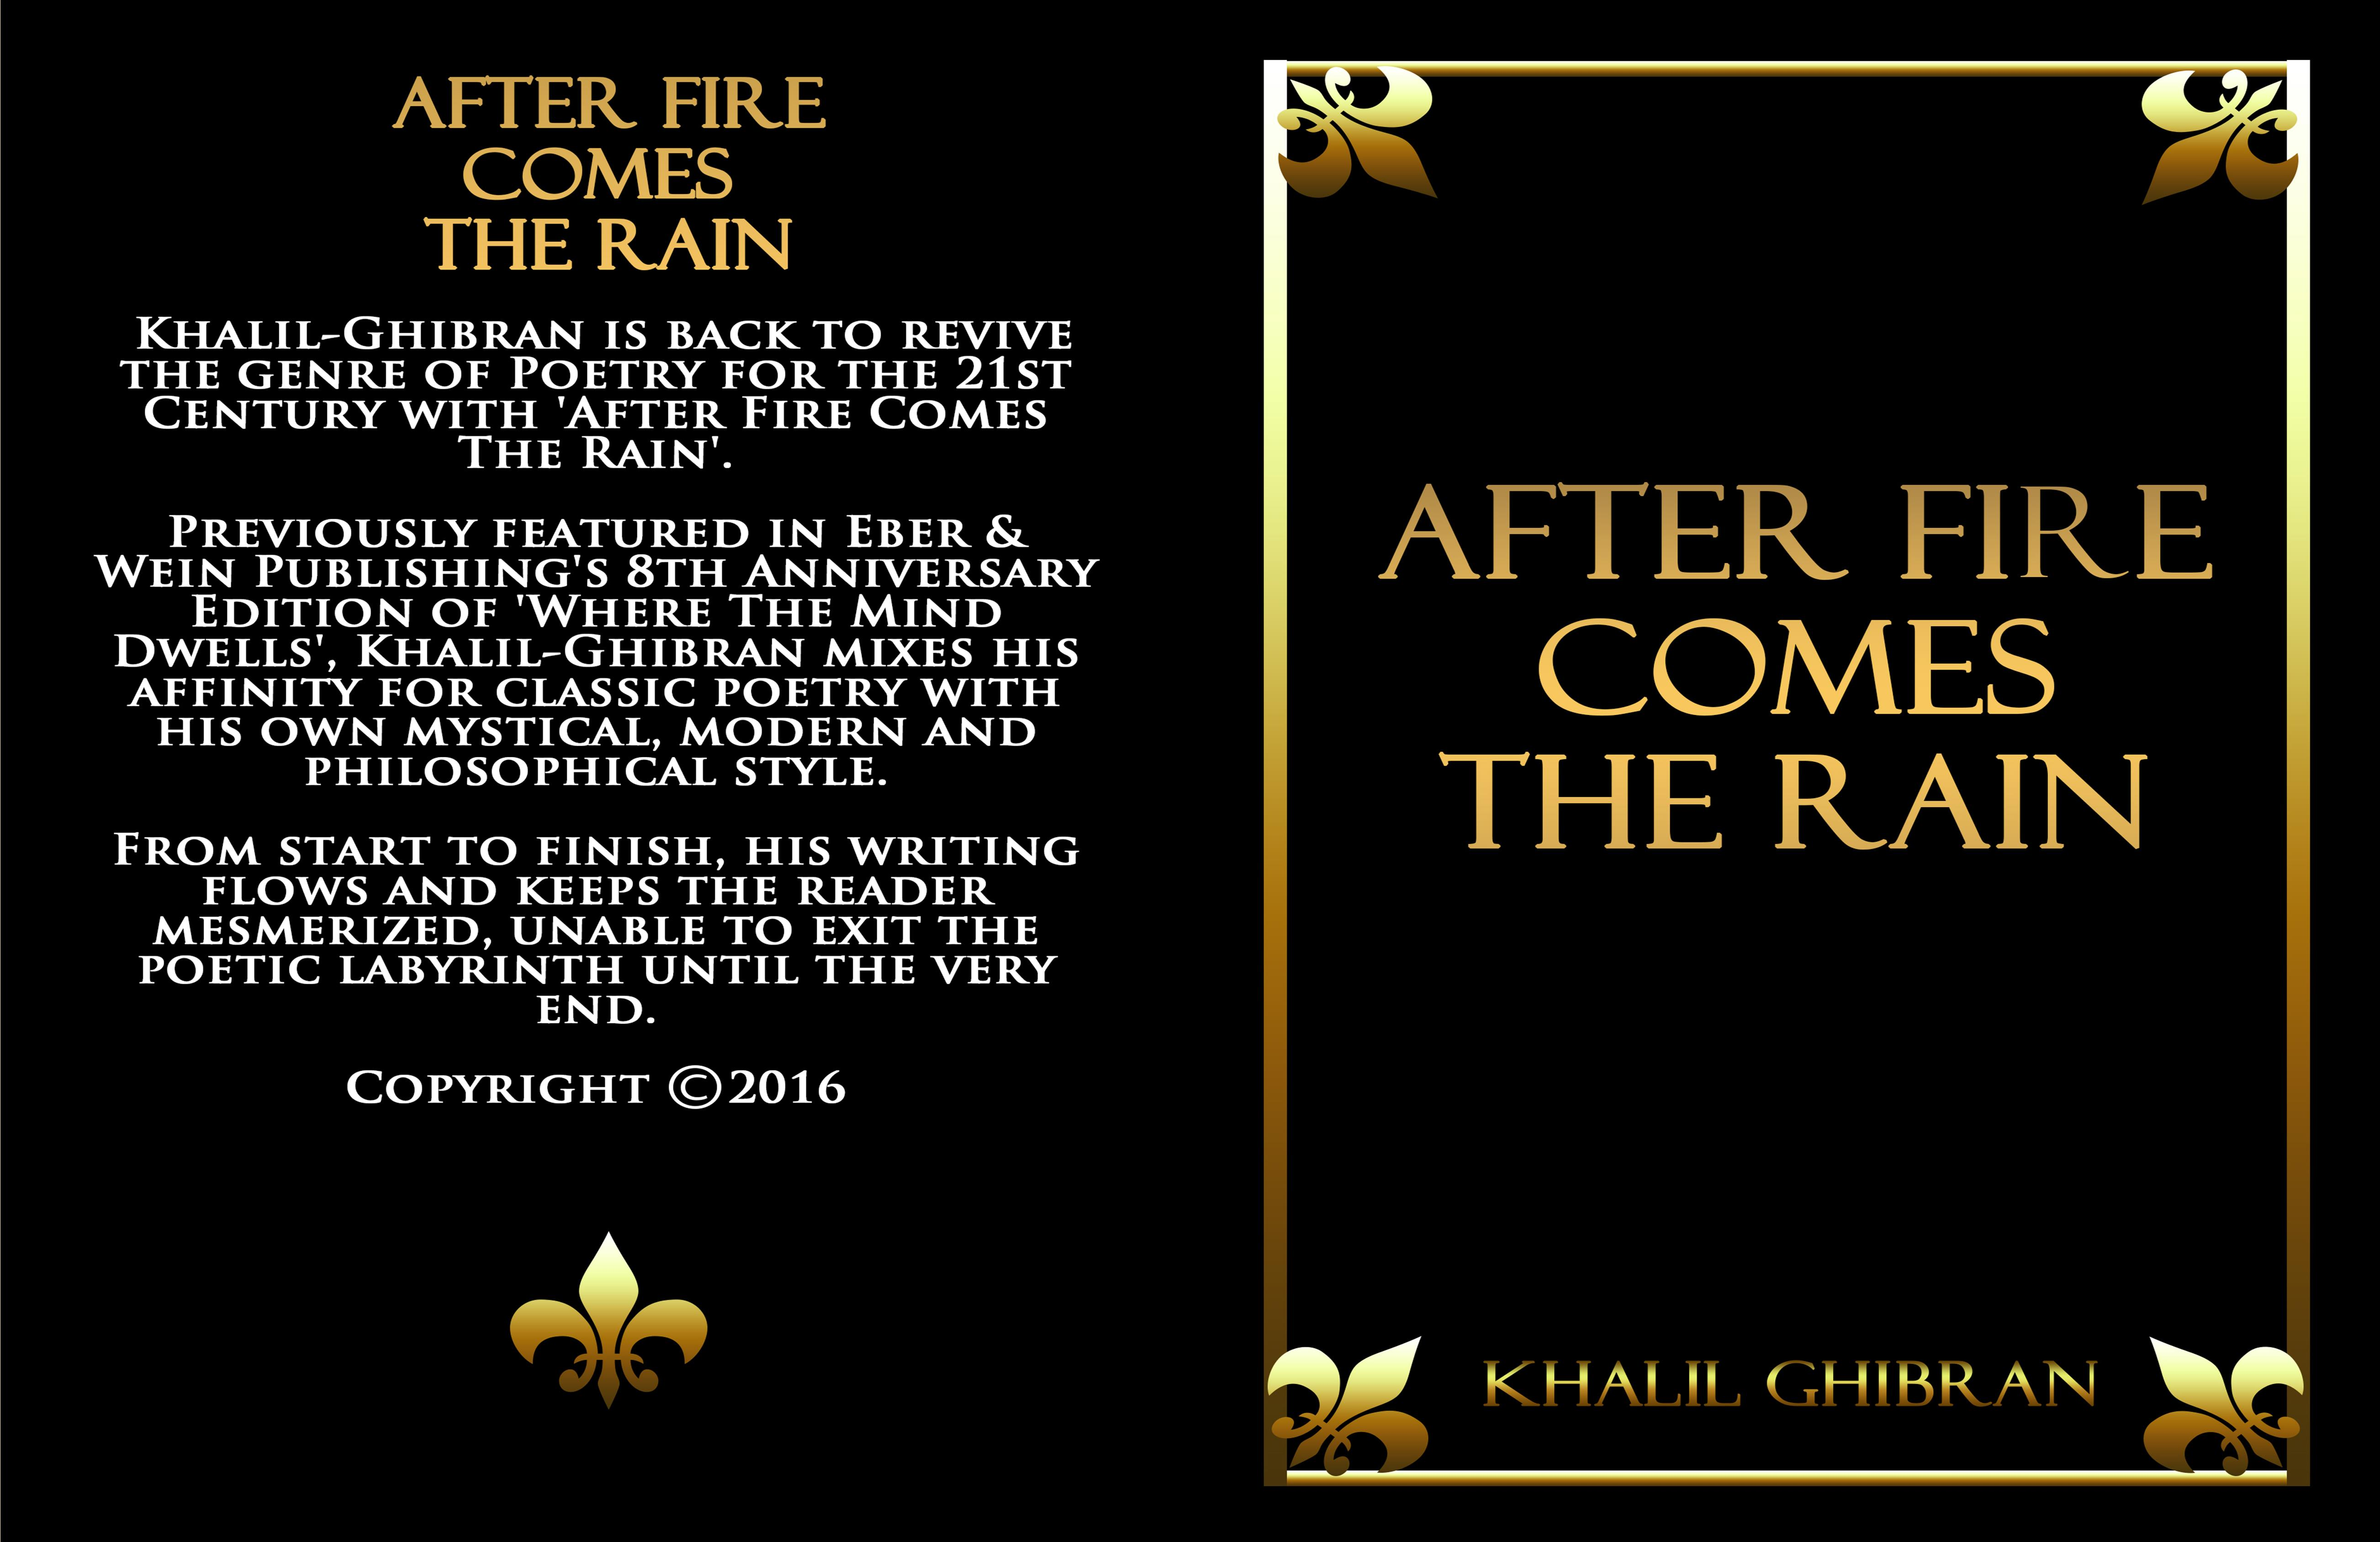 After Fire Comes The Rain cover image